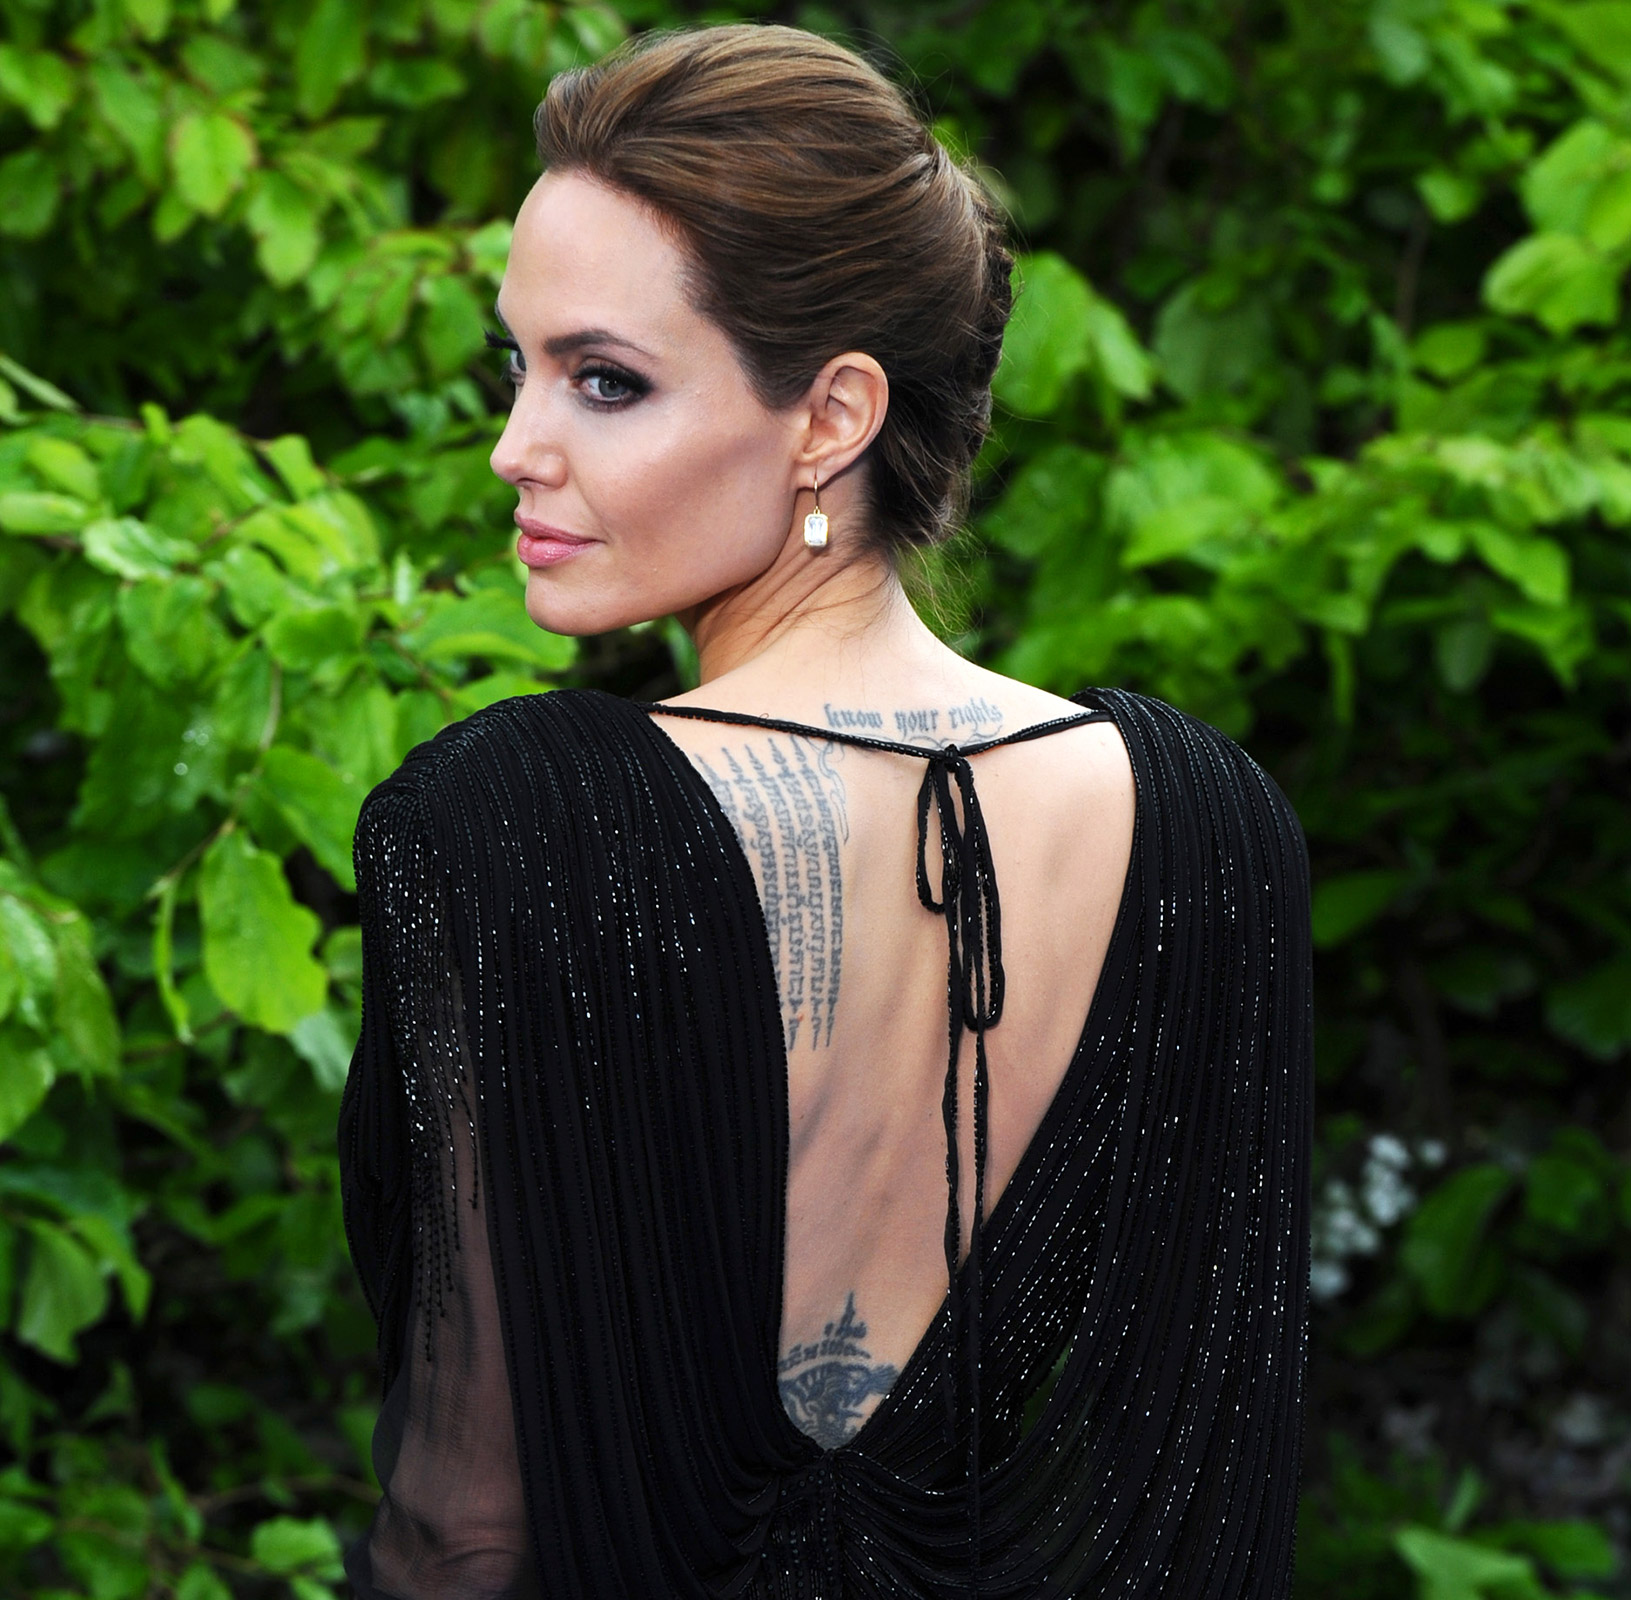 Amazing and Daring Angelina Jolie Tattoo Designs and Meaning Angelina Jolie